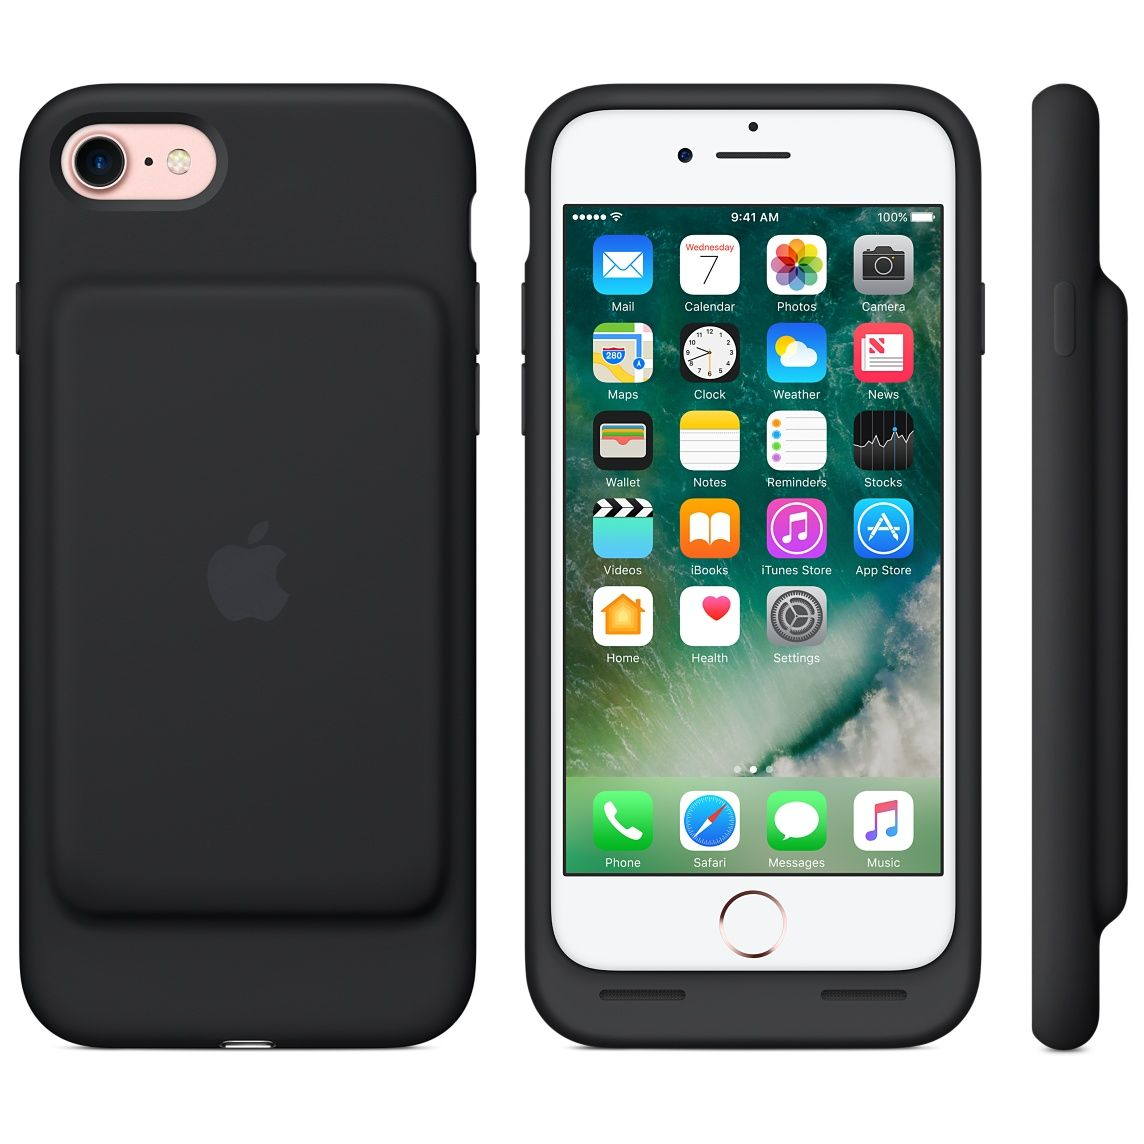 Iphone 7 Smart Battery Case White Apple Iphone Case Apple Iphone 6s Plus Iphone